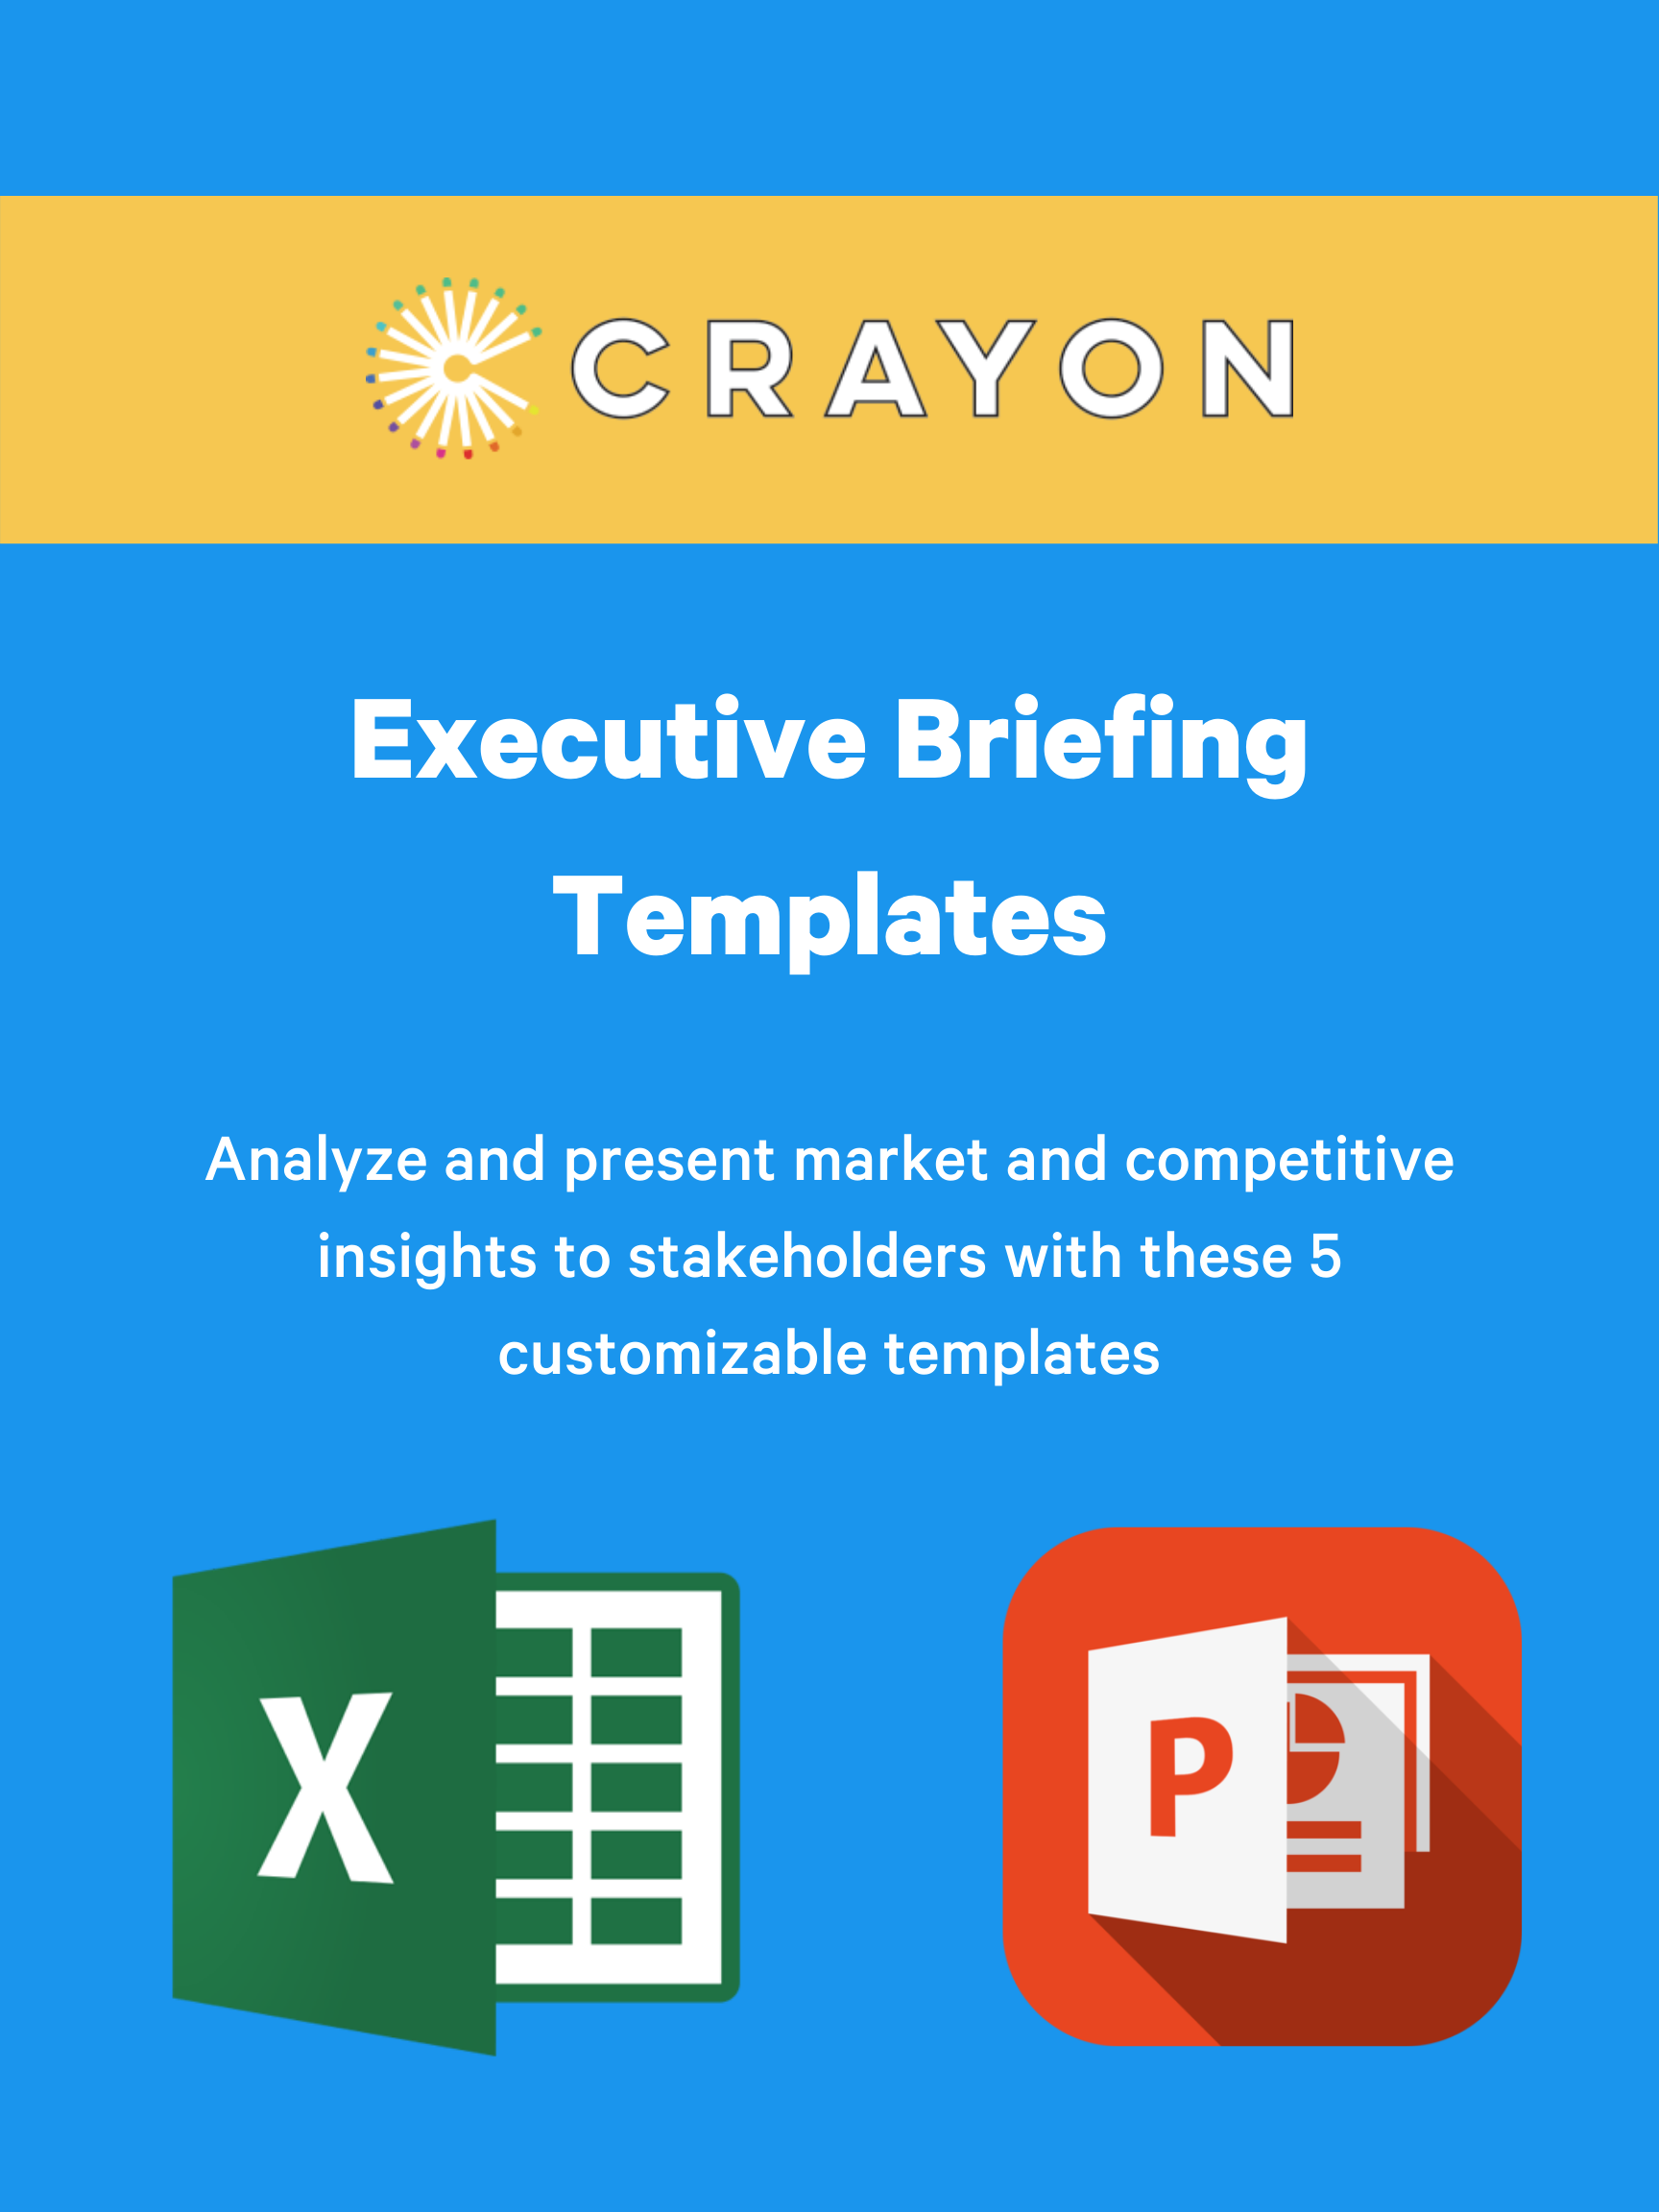 Executive Briefing Templates Crayon